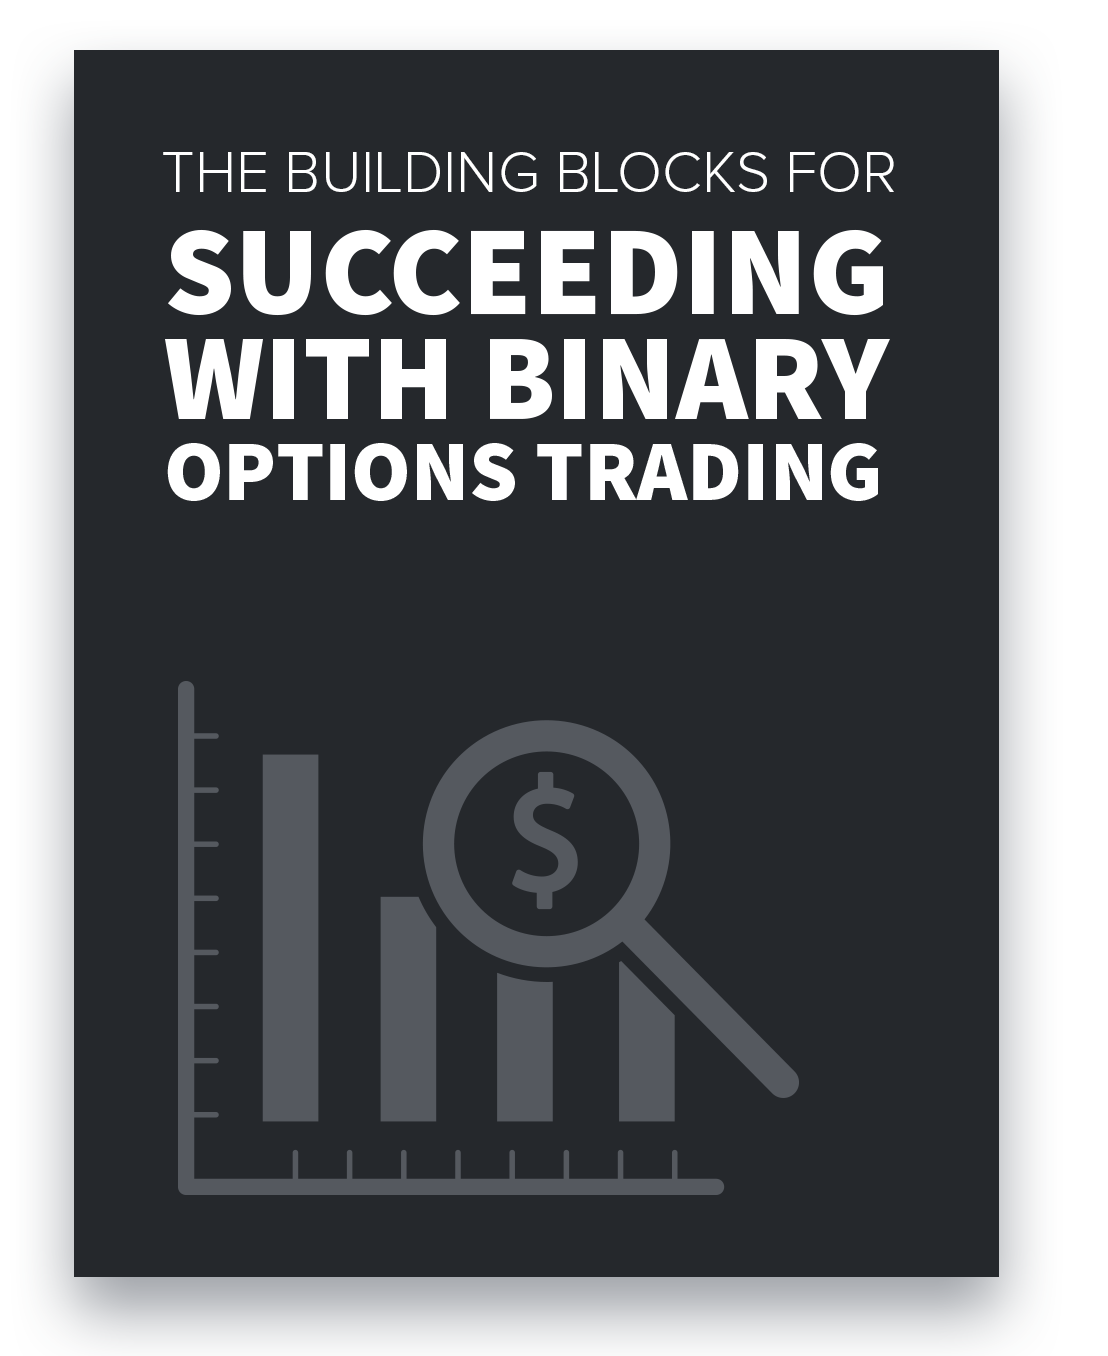 Worksheet The Help Ebook Free how to trade binary options profitably zone this e book was created by traders and for with the aim of equipping right skills earning big returns from trading b